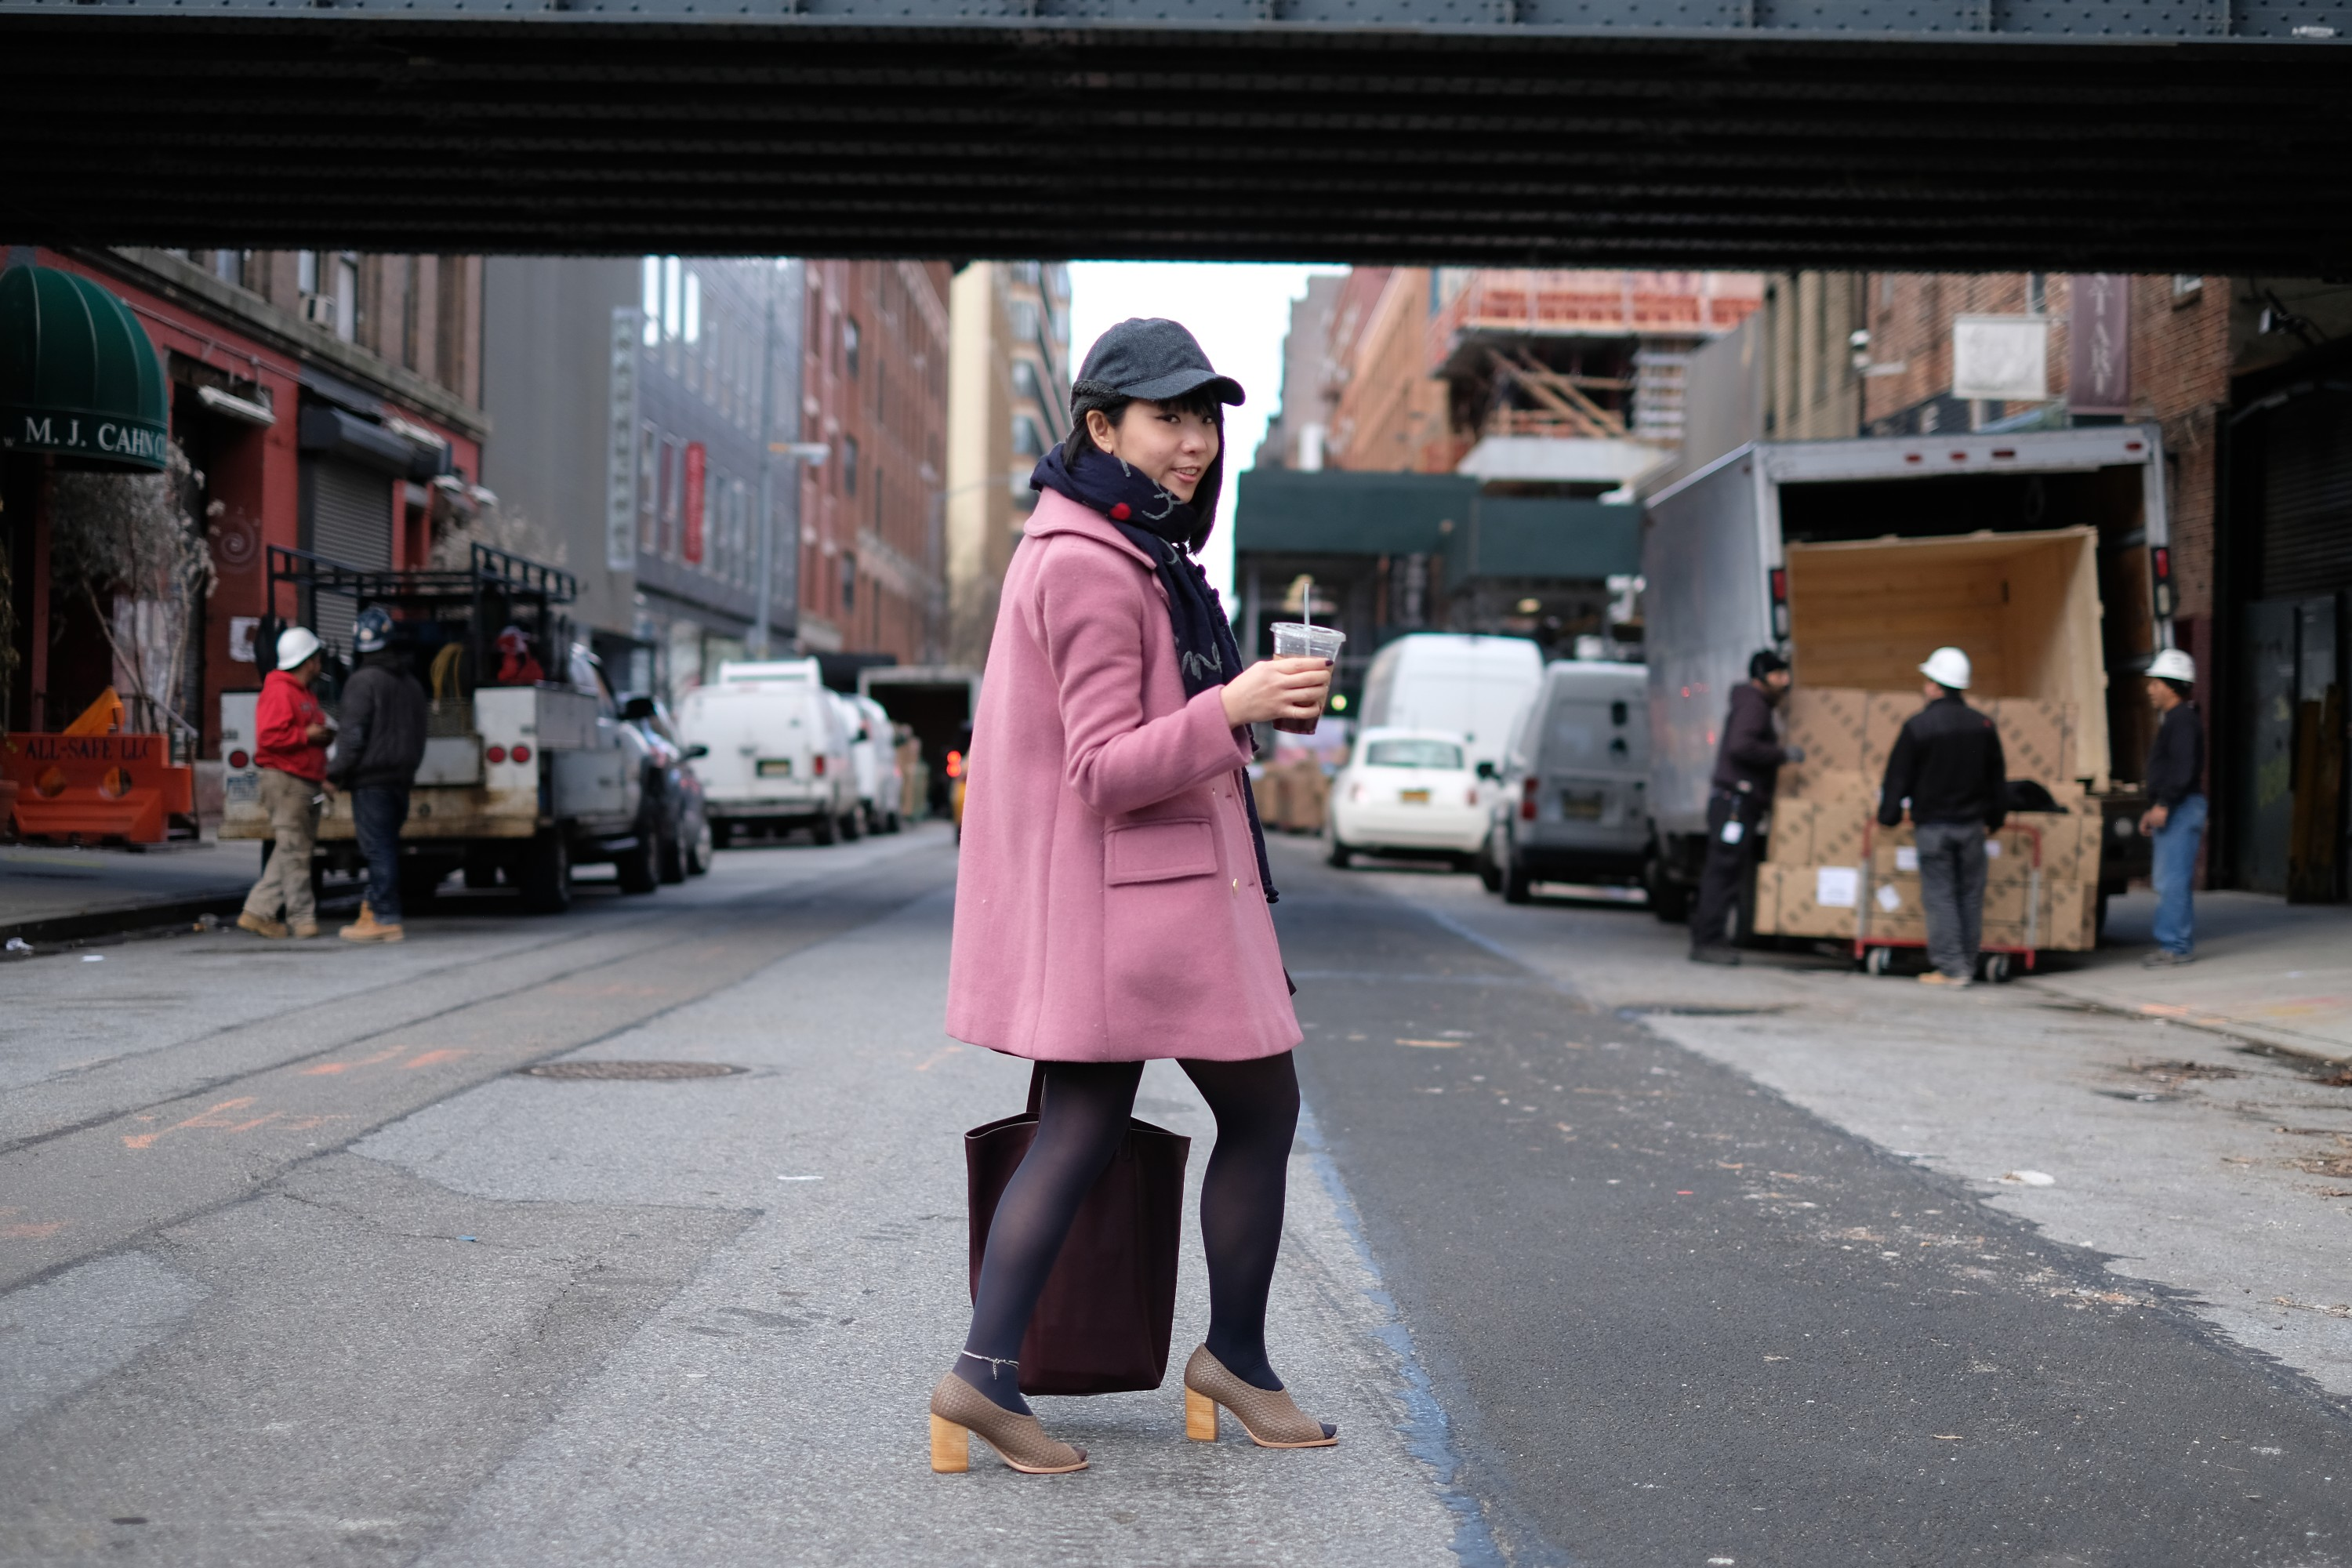 japanese girl in pink coat on city street